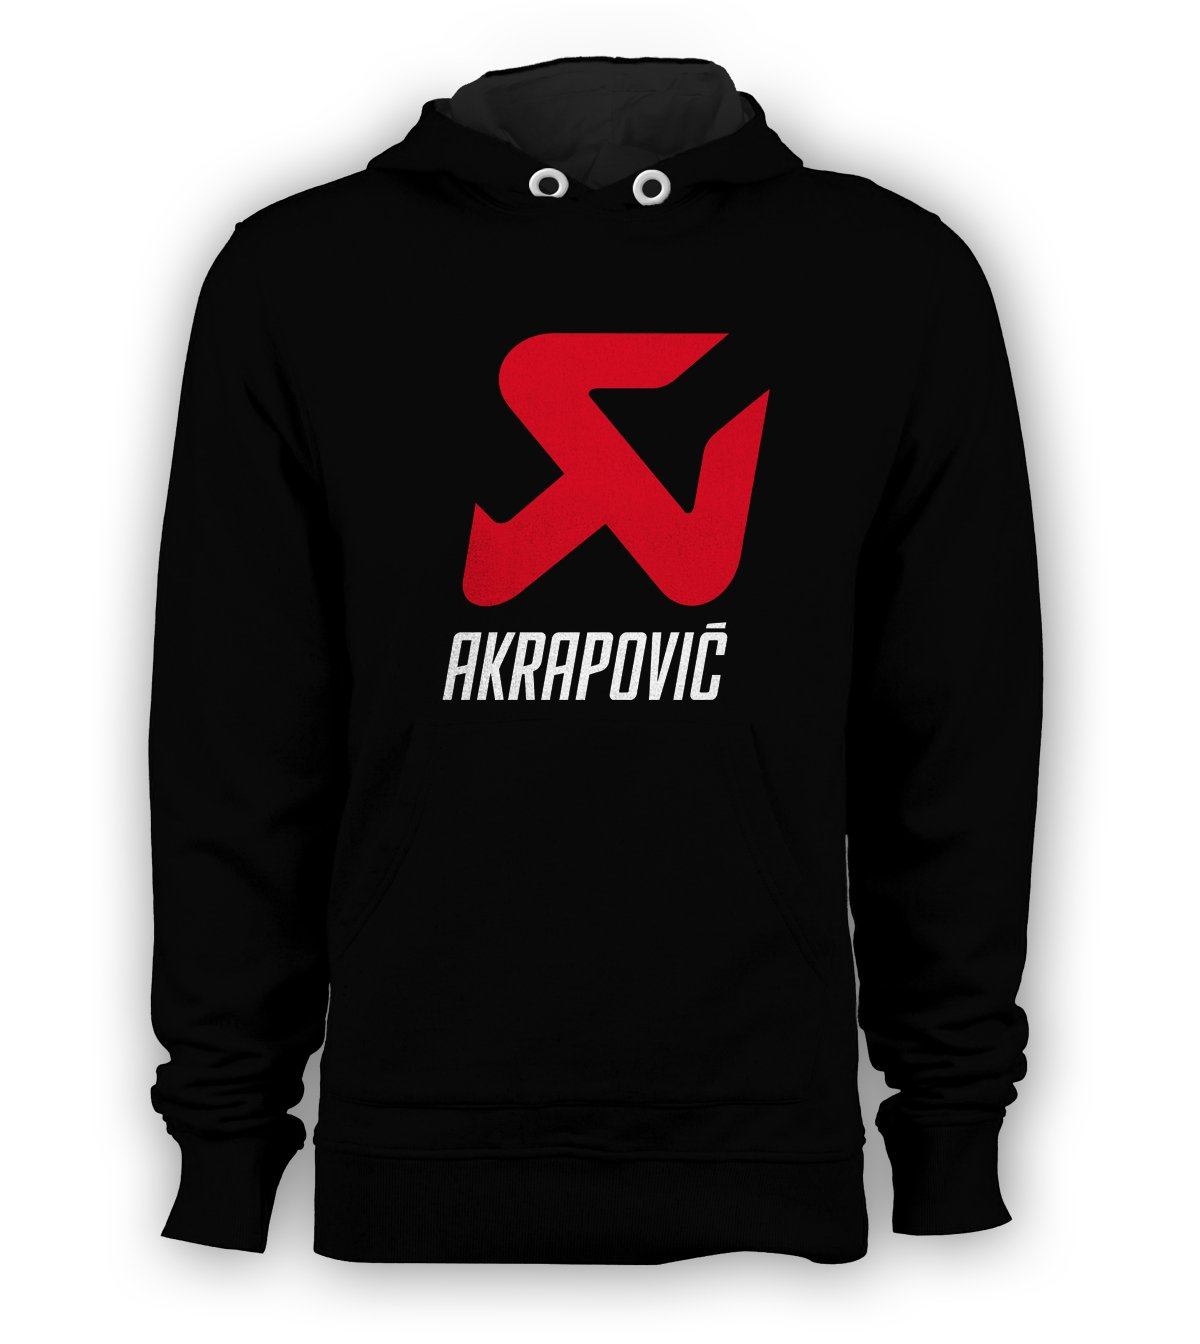 Akrapovic Exhaust Racing MotoGP Pullover Hoodie Men Sweatshirts Size S to 3XL New Black